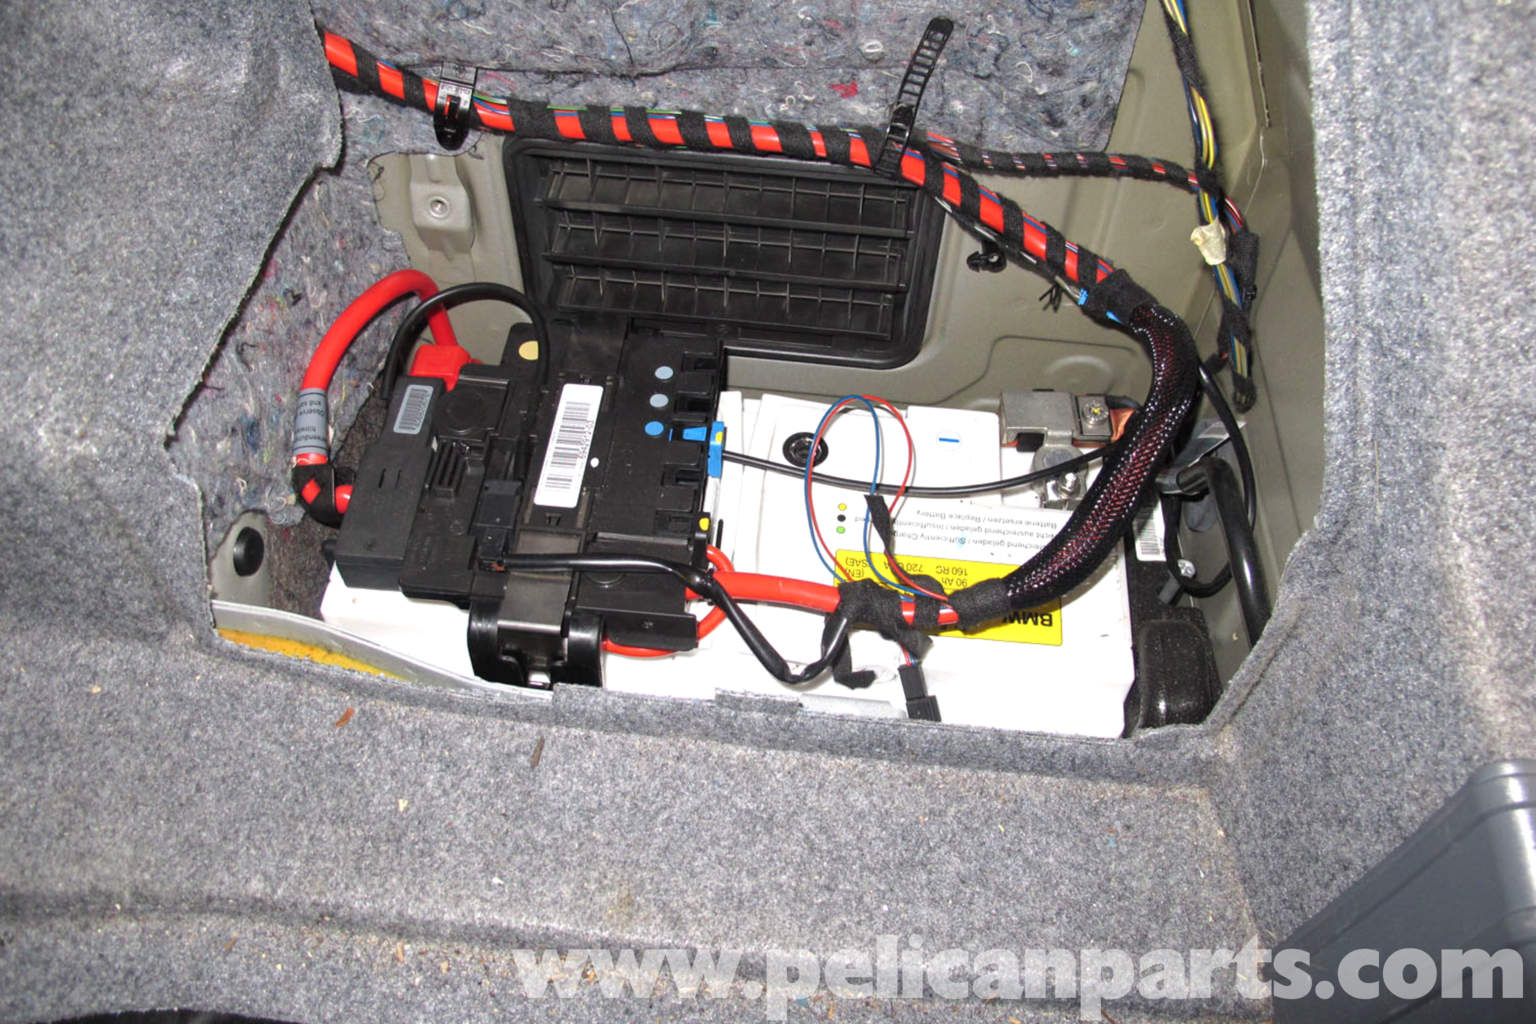 pic01 e90 m3 fuse box e39 fuse box wiring diagram ~ odicis e90 m3 fuse box location at soozxer.org